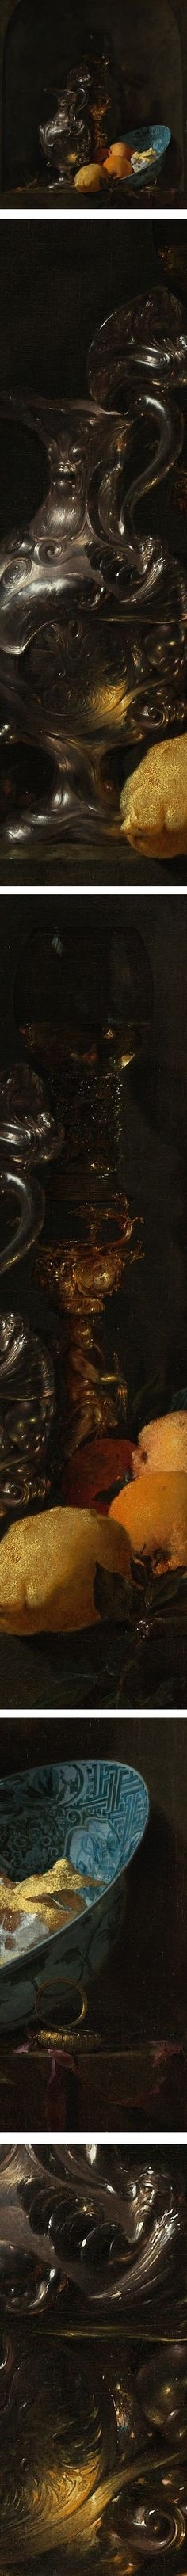 Eye Candy for Today: Willem Kalf's silver jug